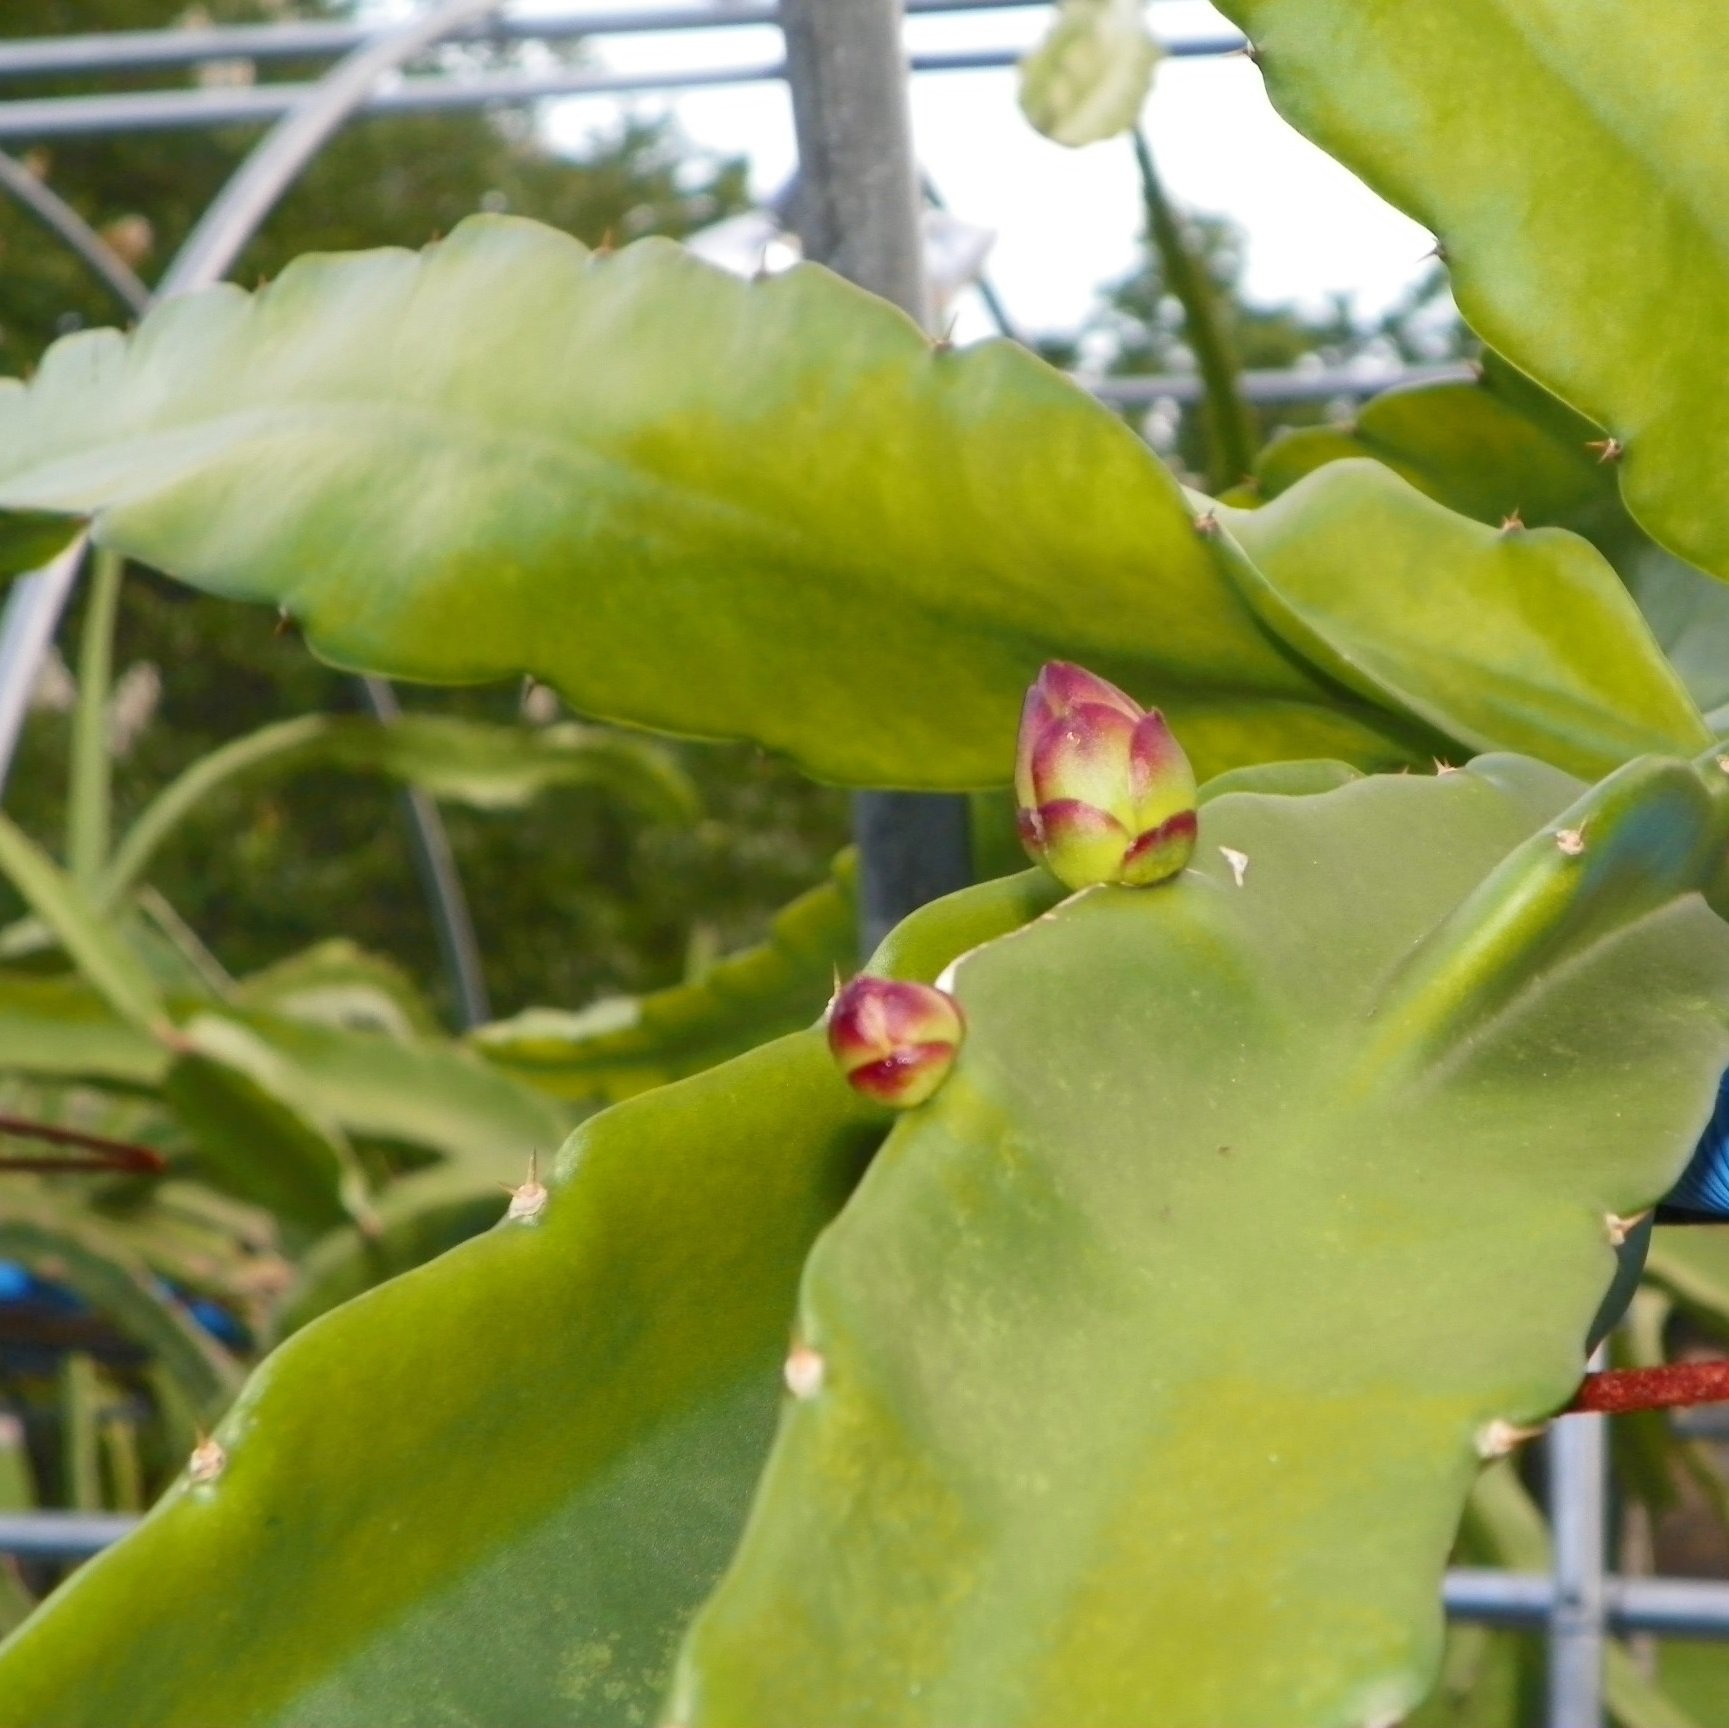 Dragon Fruit variety Bruni flower buds